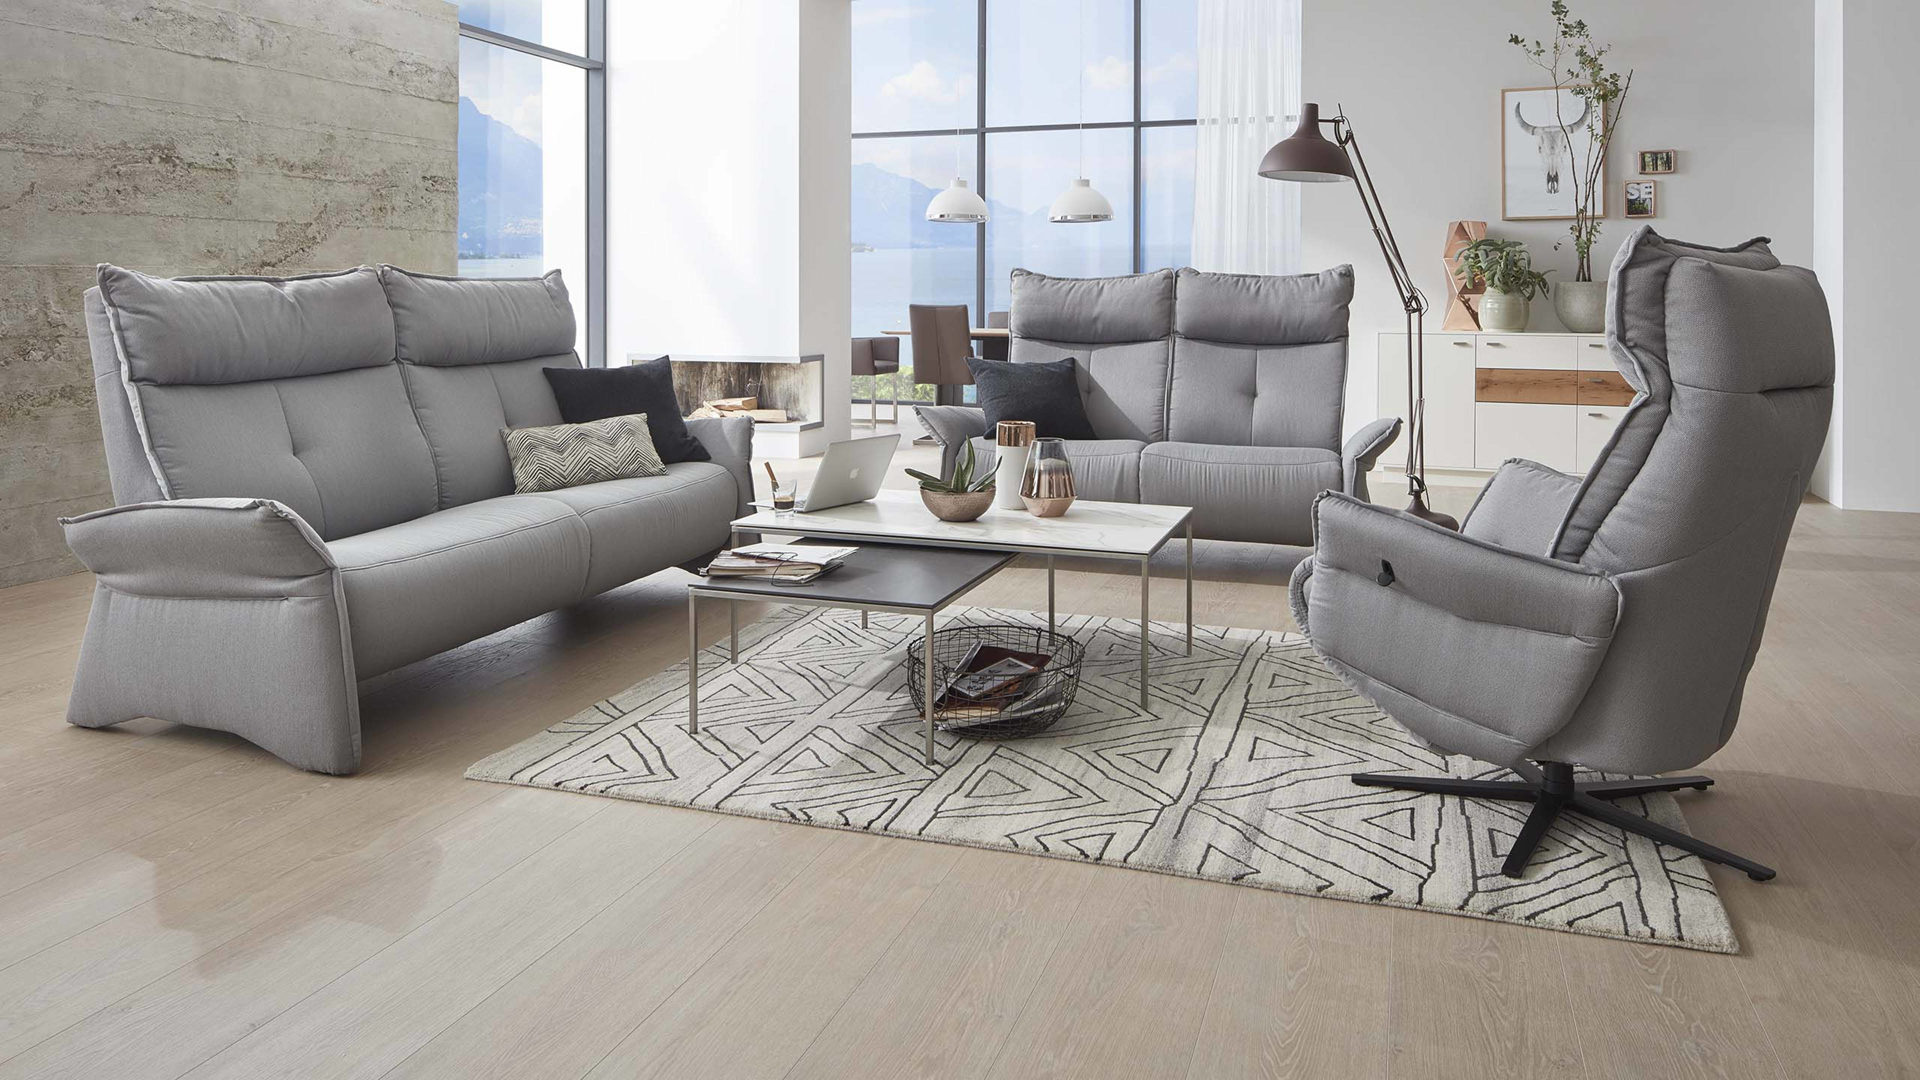 Sofa Struktur. Bright Design Riess Ambiente Sofa Ecksofa Mit Hocker ...